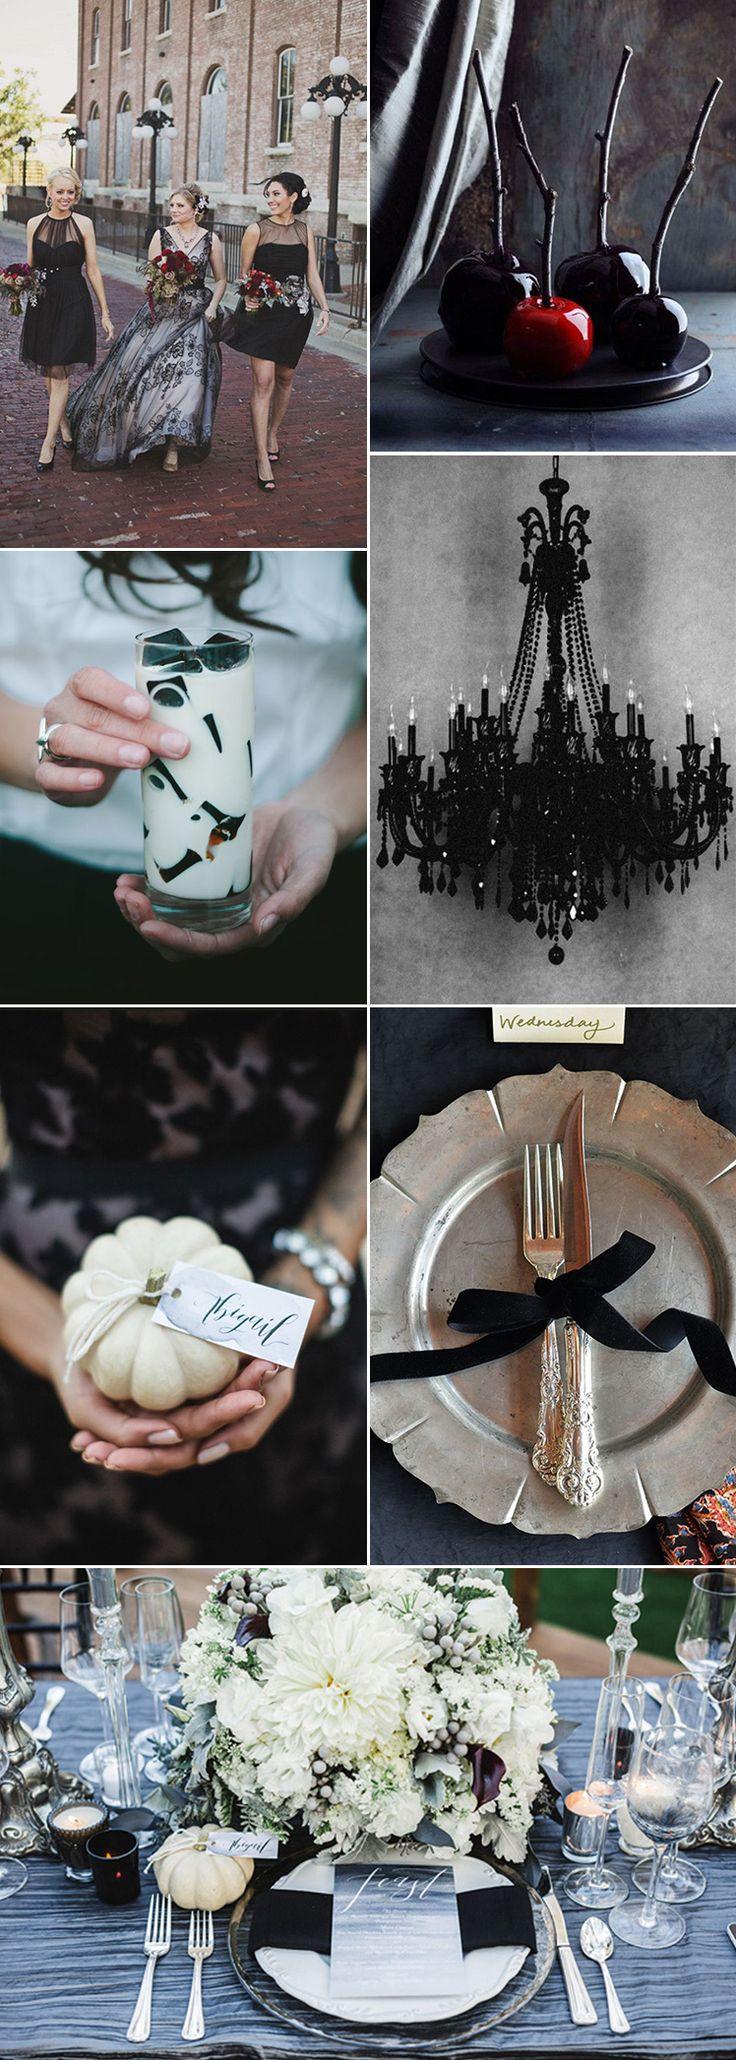 I now that a Halloween themed wedding isn't going to be everyone's cup of tea, and it's highly unlikely that you have even thought about this style of autumn wedding. I am here to tell you a Halloween wedding doesn't have to be full of cauldrons and witches hats. You can have a Halloween wedding that's elegant - with an edge....